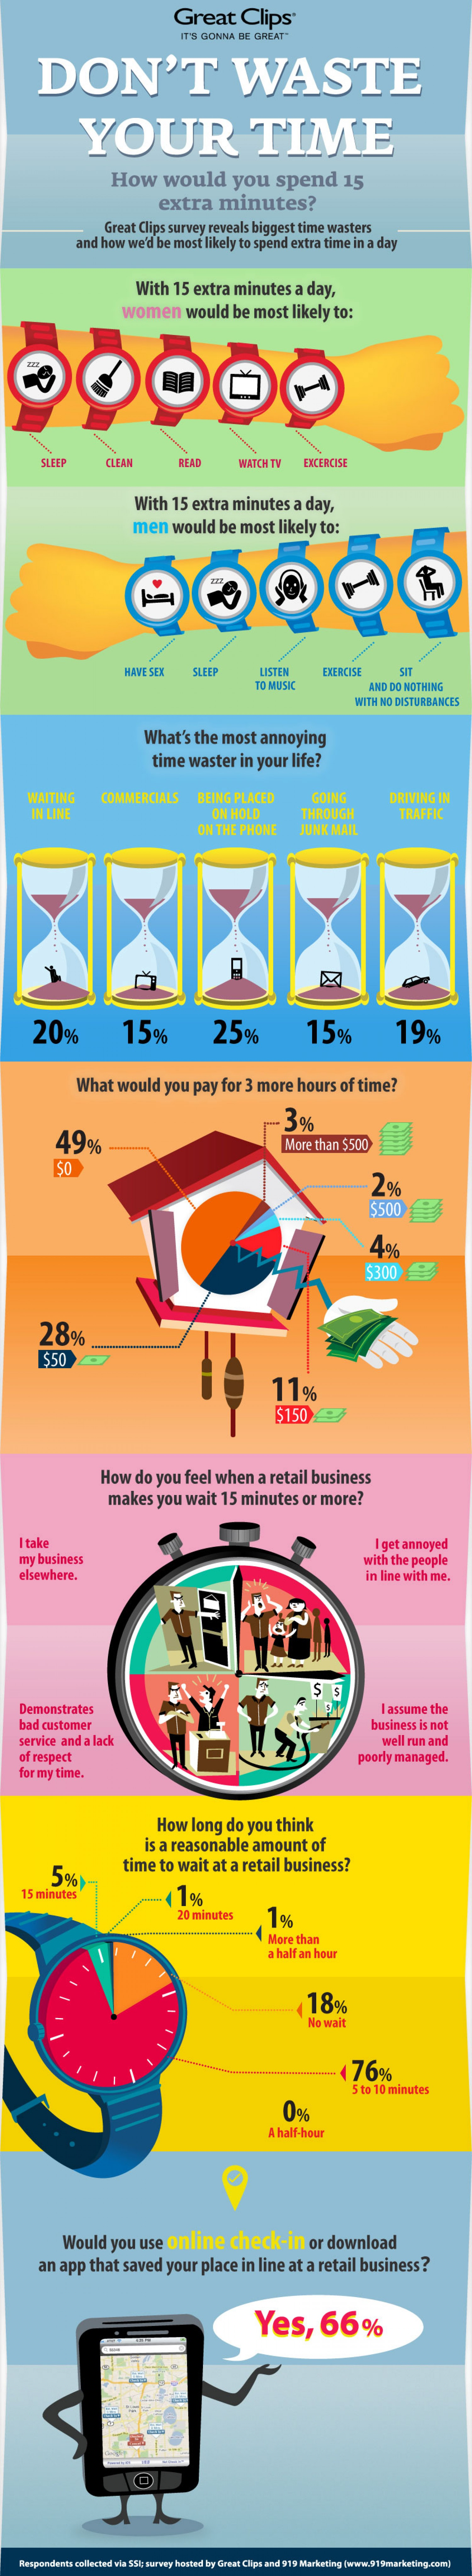 How would you spend 15 extra minutes?